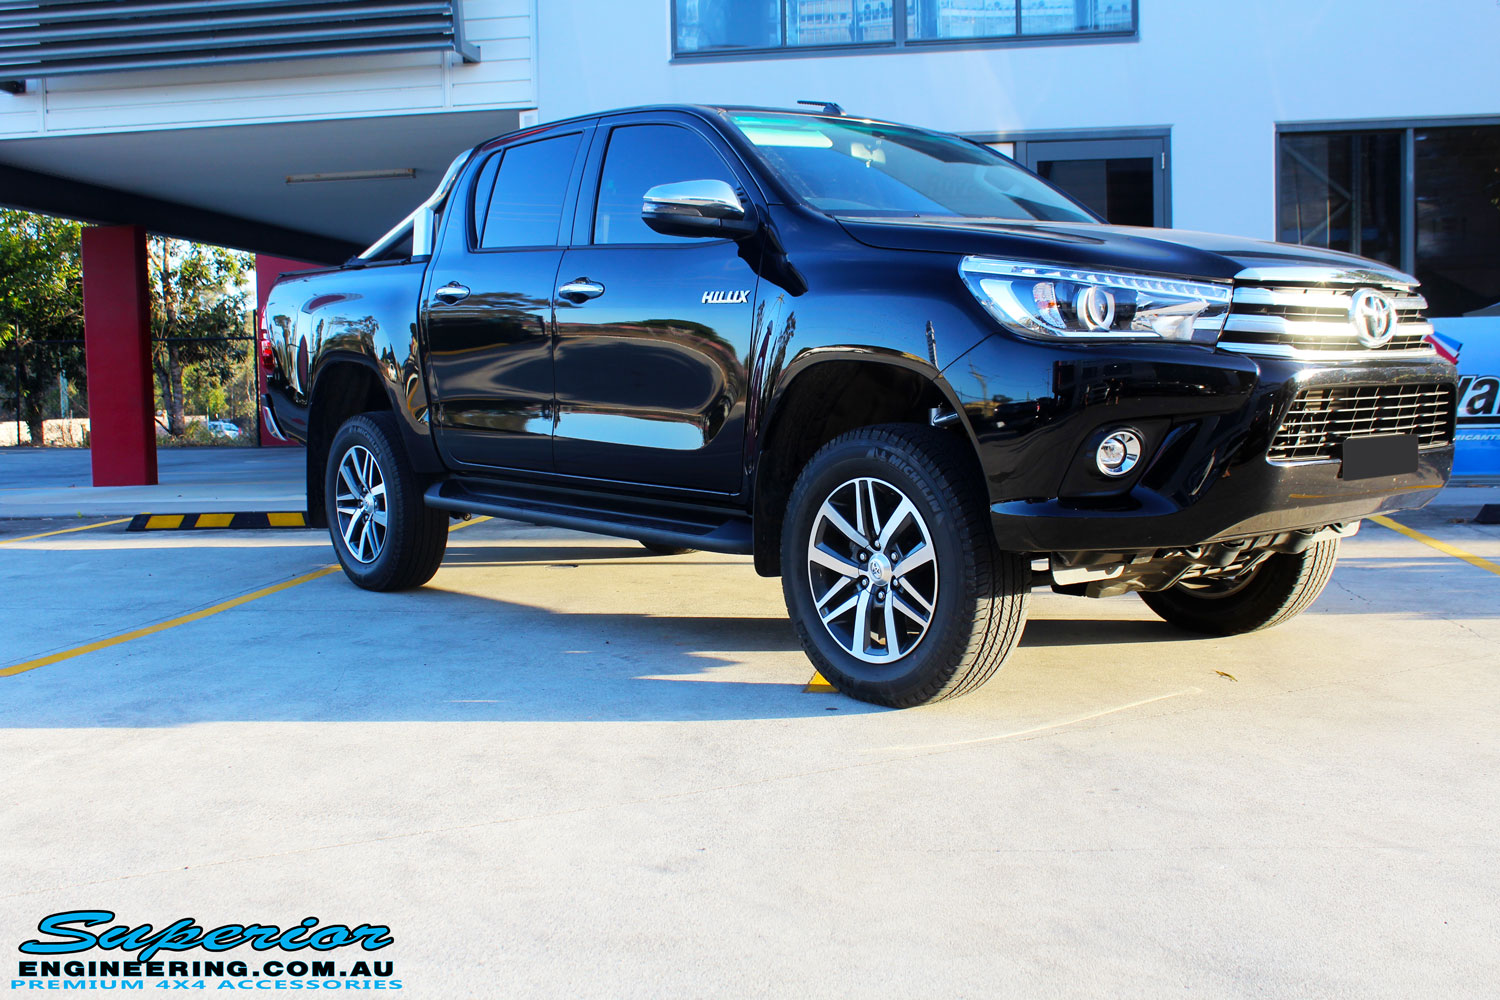 """Right side view of a Toyota Revo Hilux Dual Cab in Black after fitment of a Superior Remote Reservoir 3"""" Inch Lift Kit"""